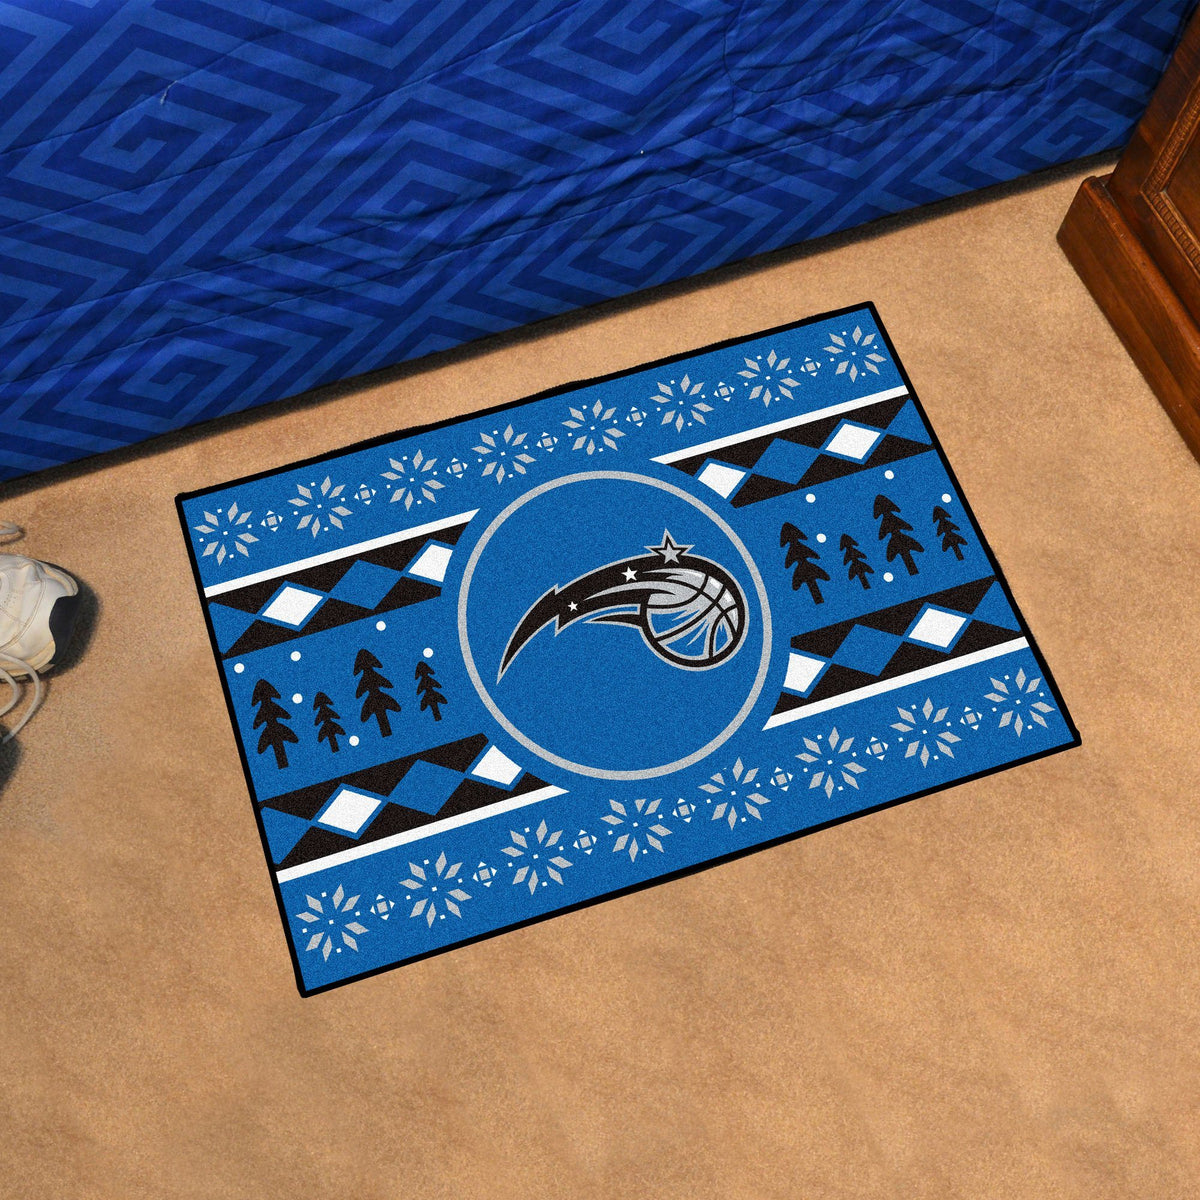 NBA - Holiday Sweater Starter Mat NBA Mats, Rectangular Mats, Holiday Sweater Starter Mat, NBA, Home Fan Mats Orlando Magic